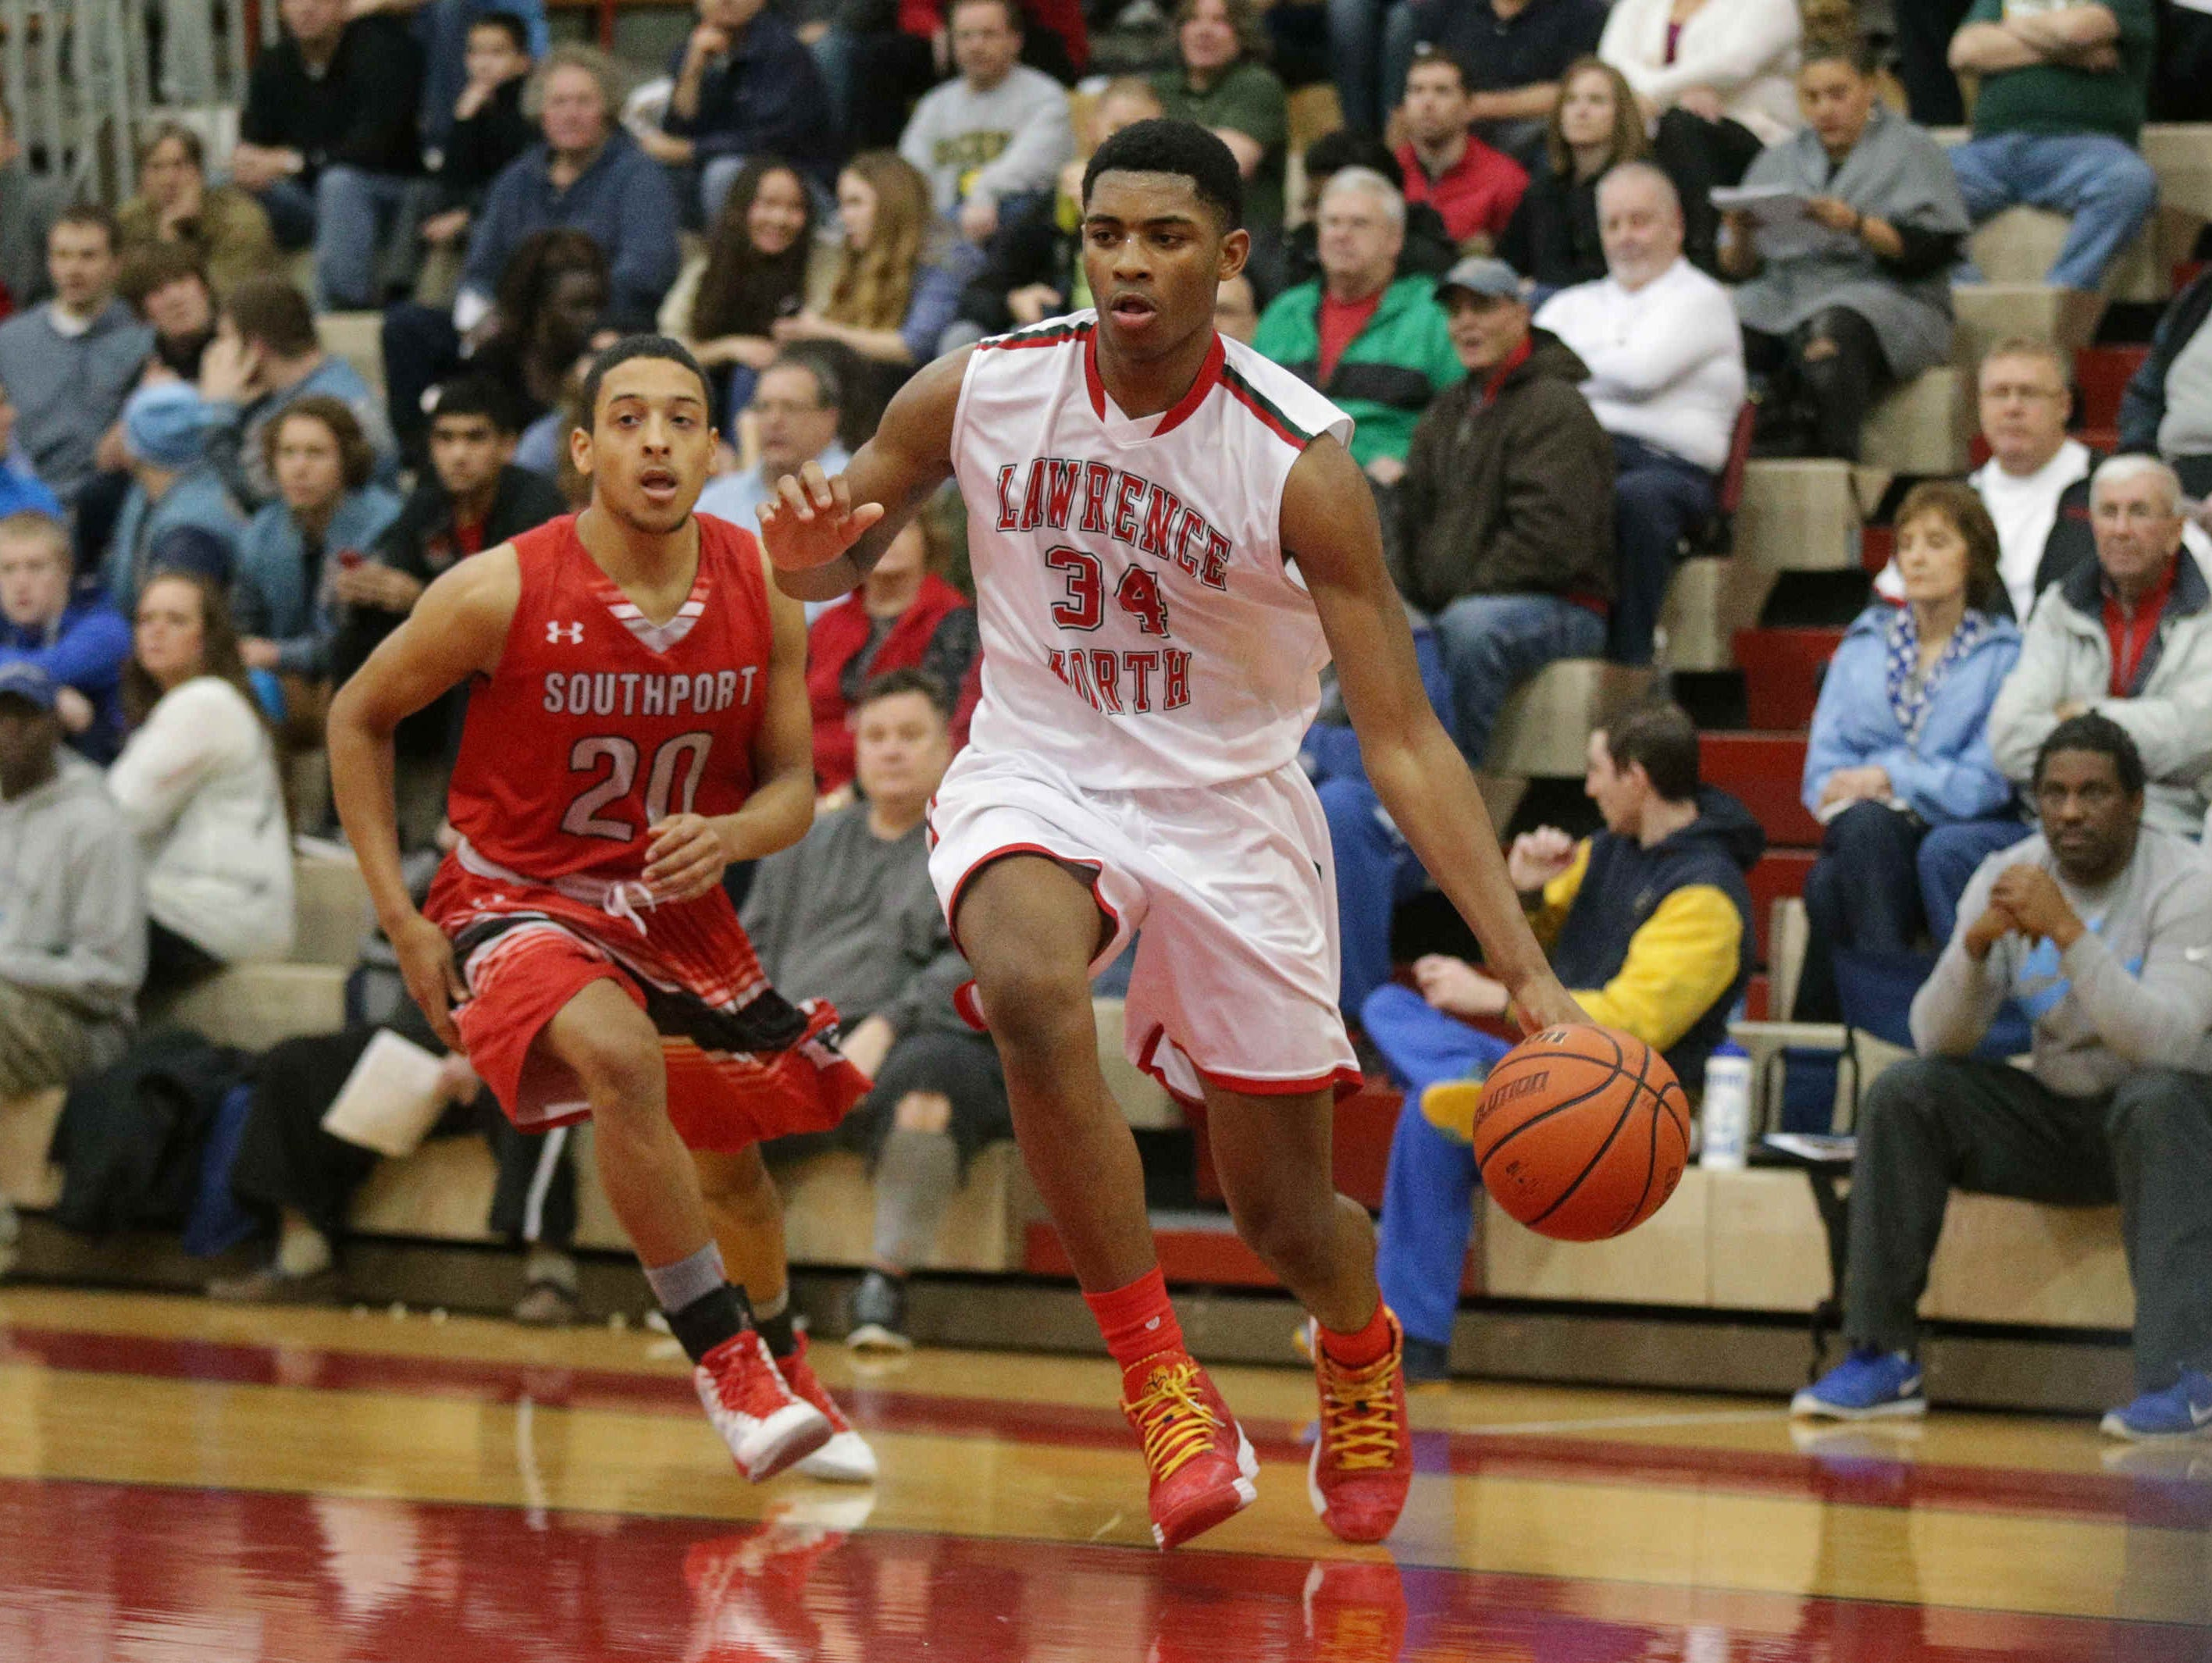 Lawrence North's Kevin Easley.